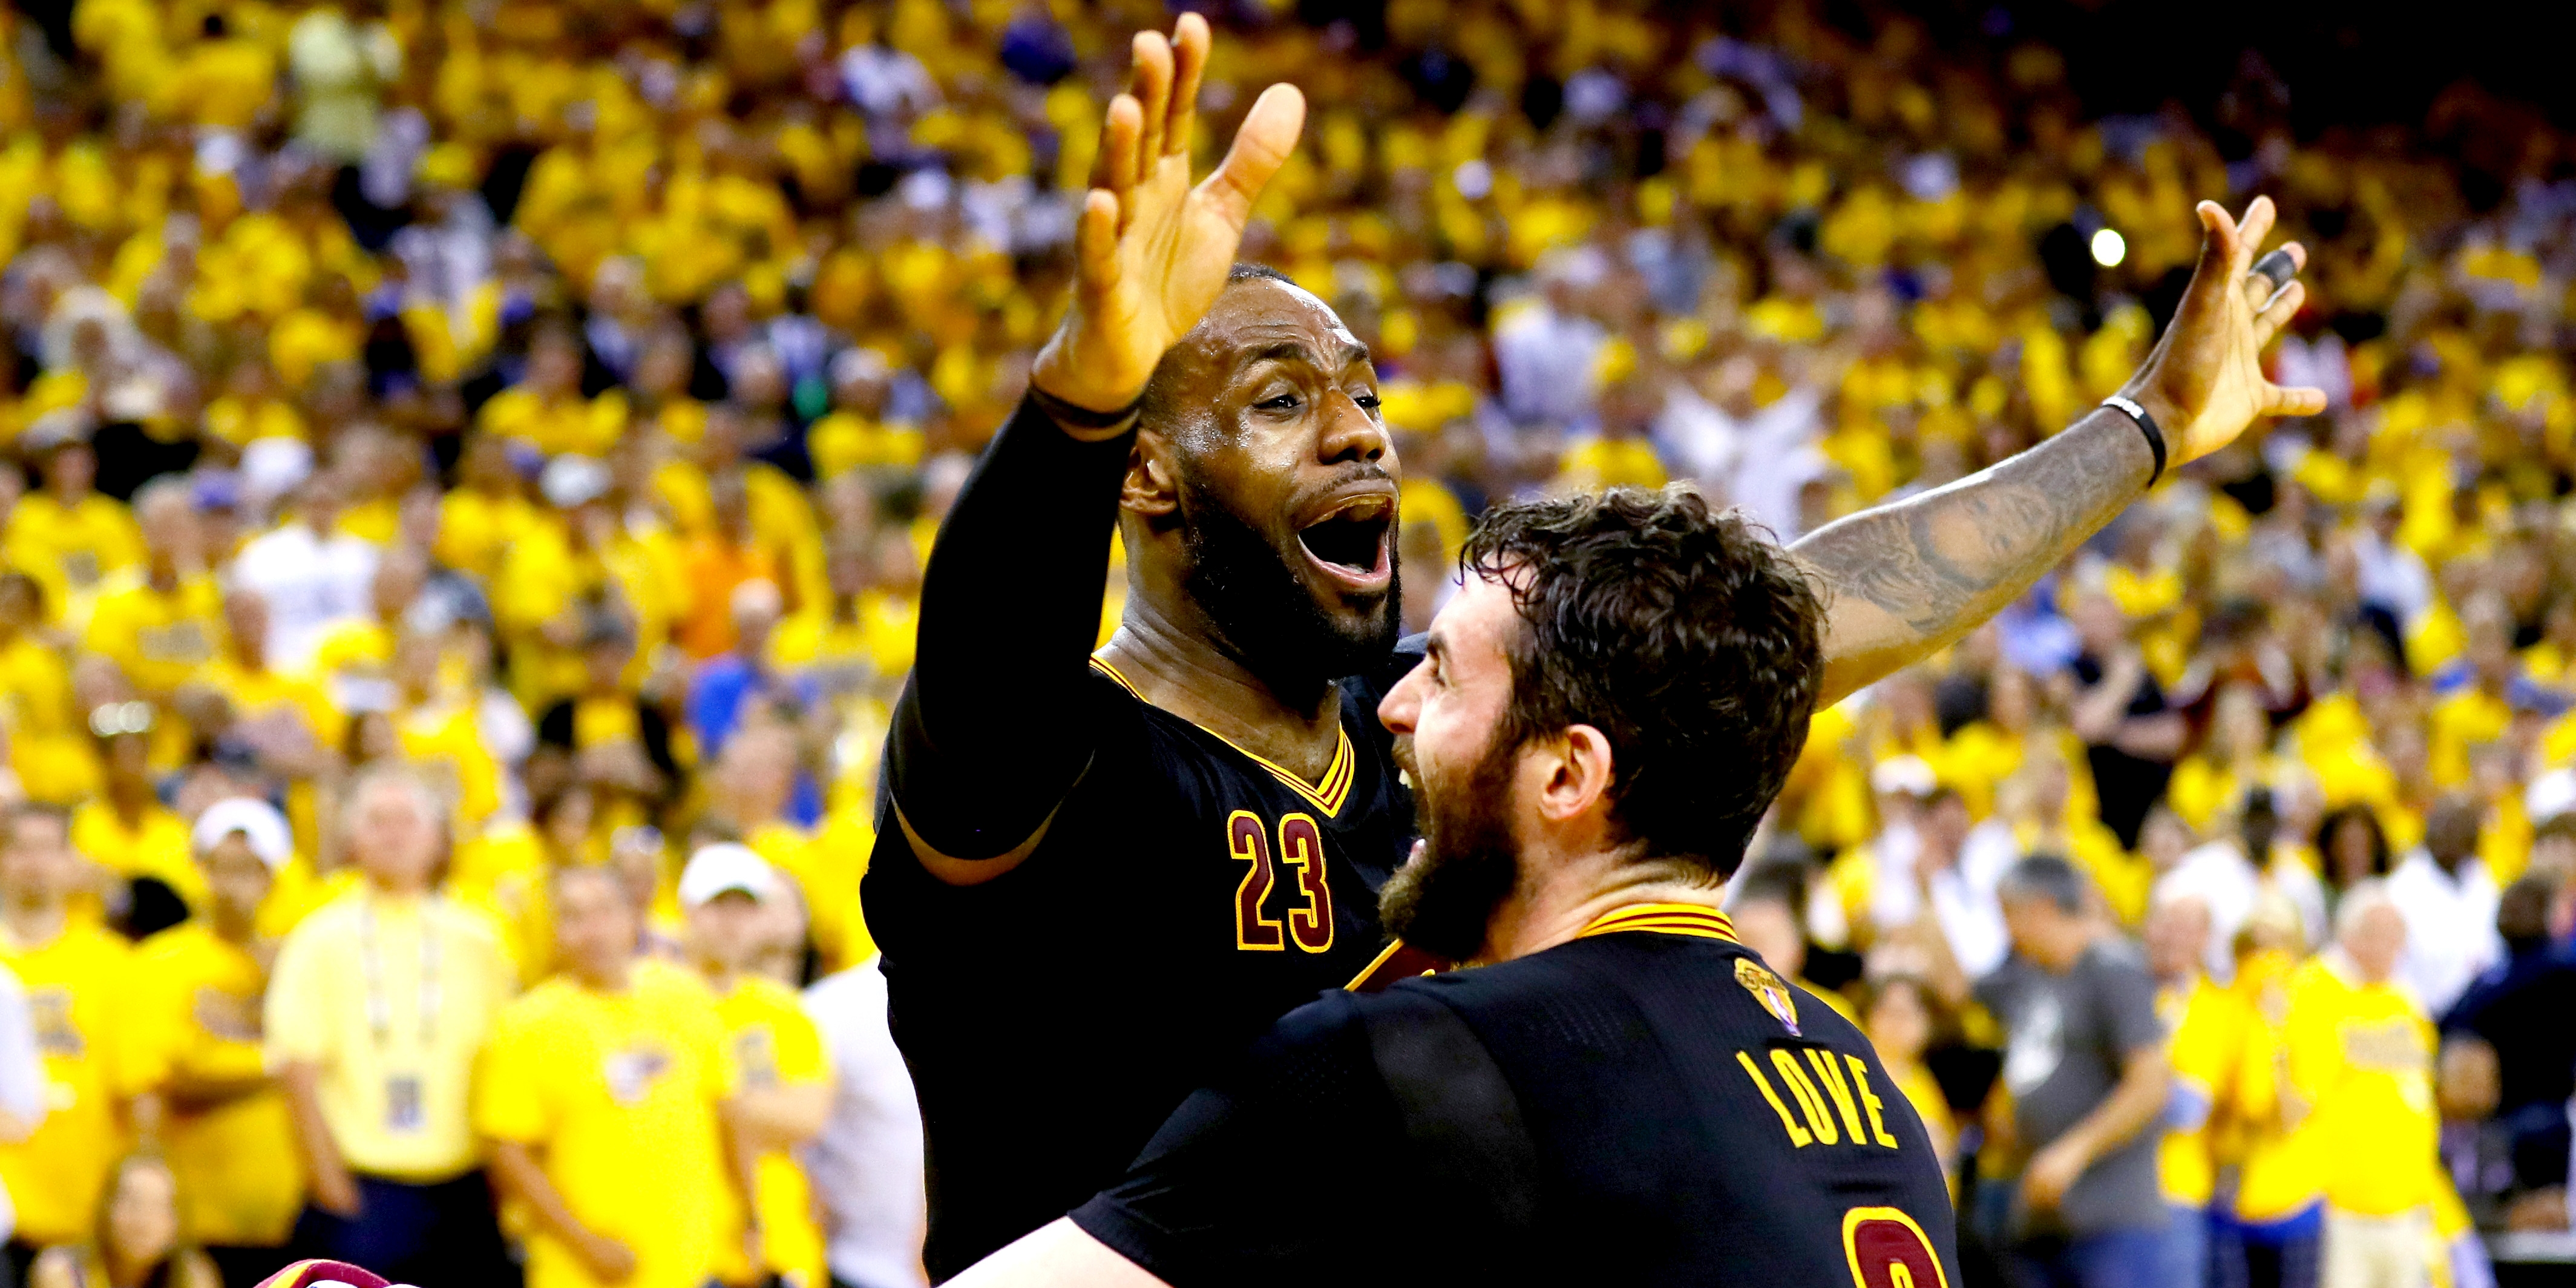 061916-sports-lebron-james-cleveland-cavs-win-nba-championship